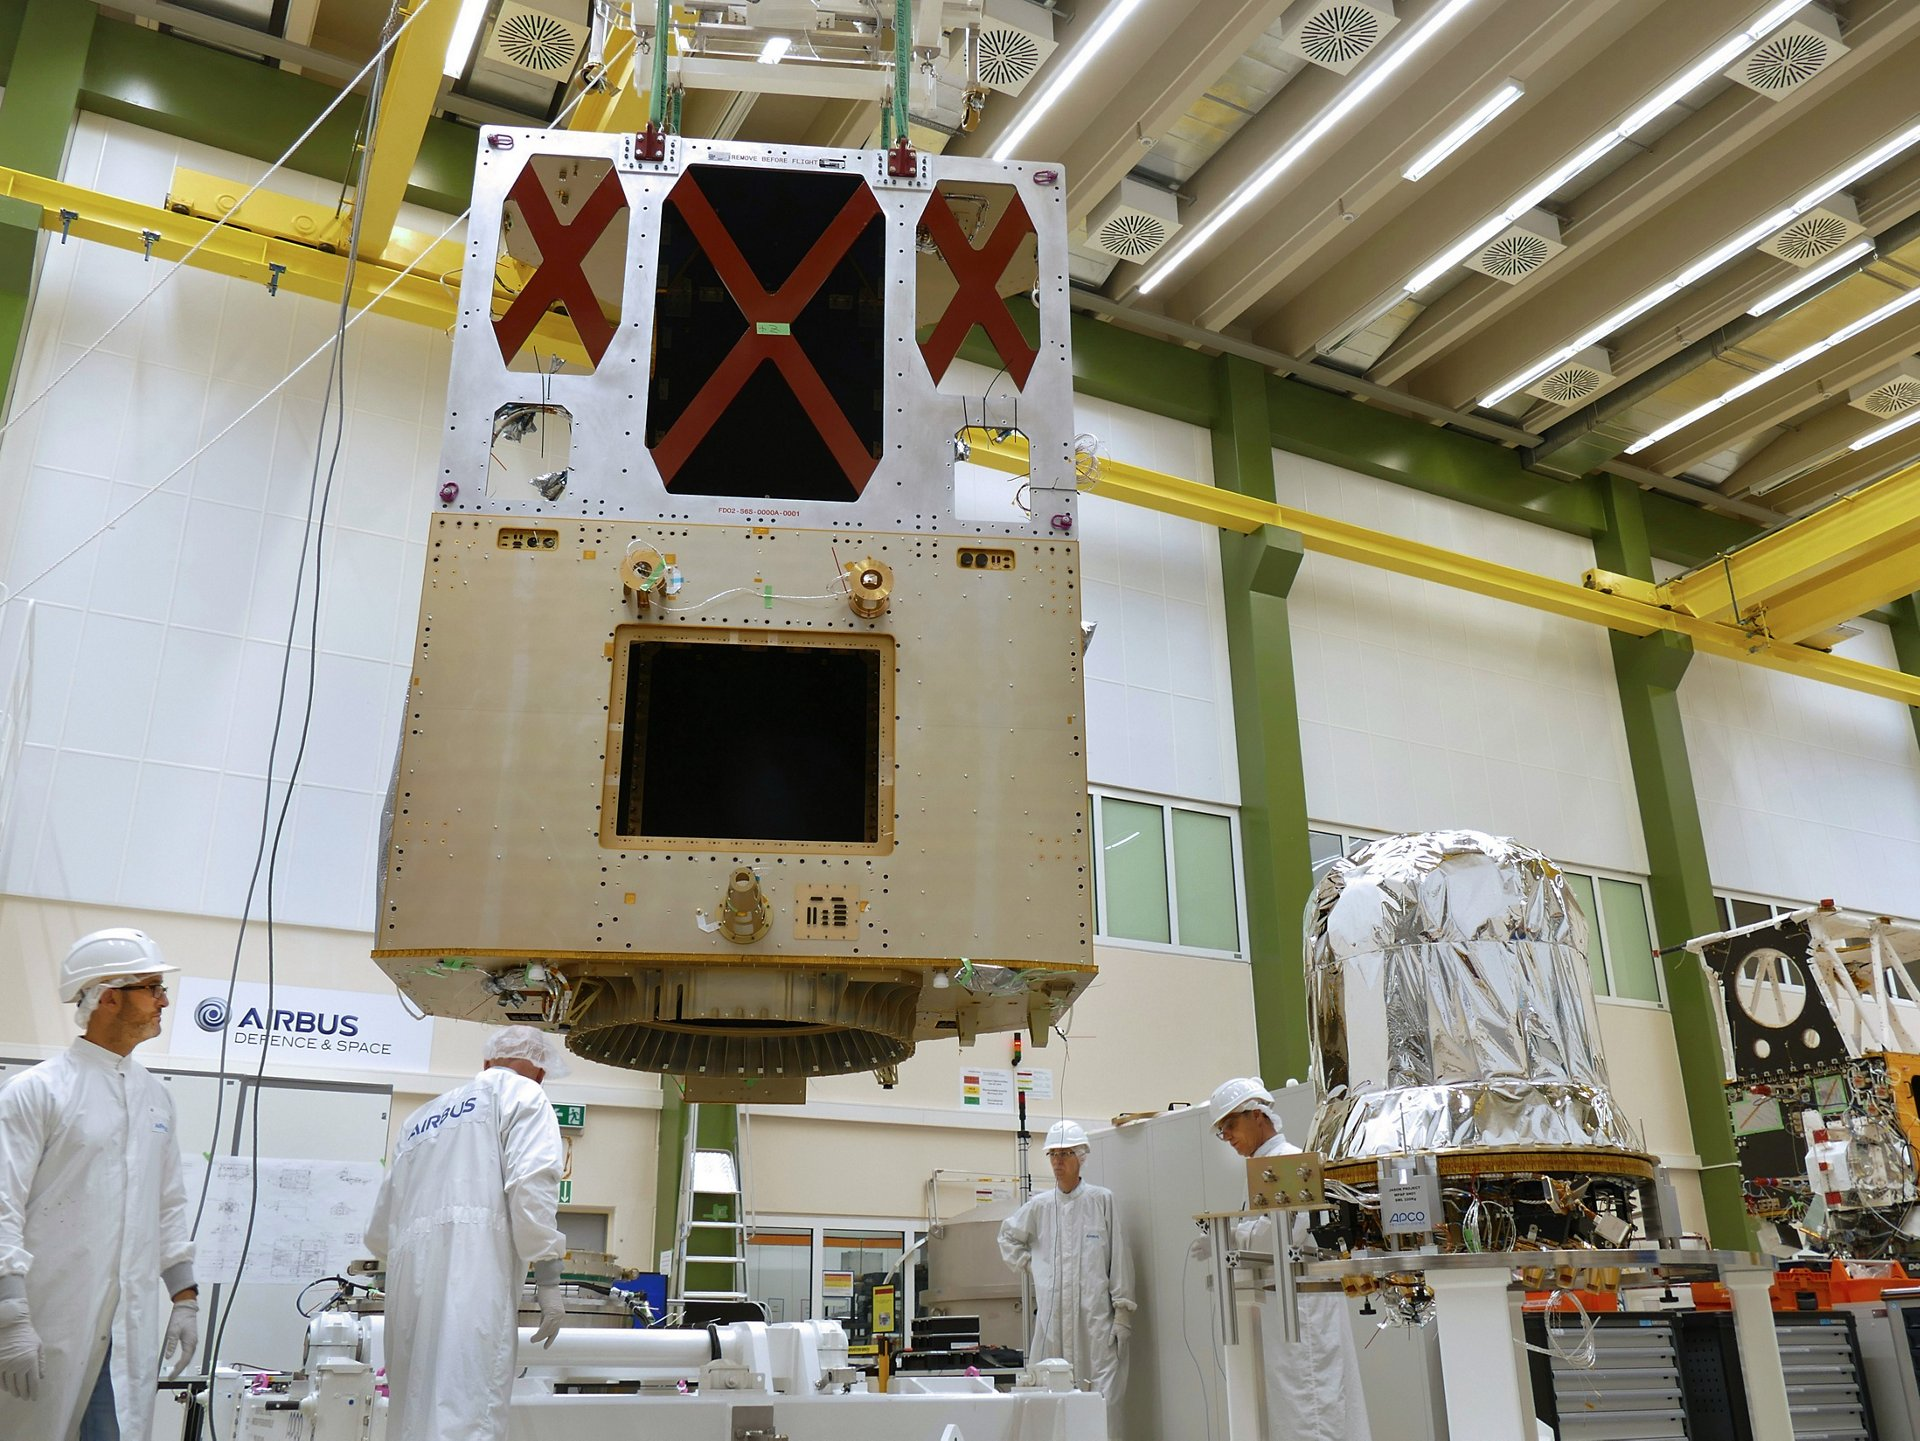 Sentinel-6, built by Airbus (Friedrichshafen/Germany) will provide high accuracy altimetry for measuring global sea-surface height, primarily for operational oceanography and for climate studies. It is a cooperative mission developed in partnership between Europe (EU, ESA and EUMETSAT) and the U.S. (NOAA and NASA). It is planned for launch in 2020.